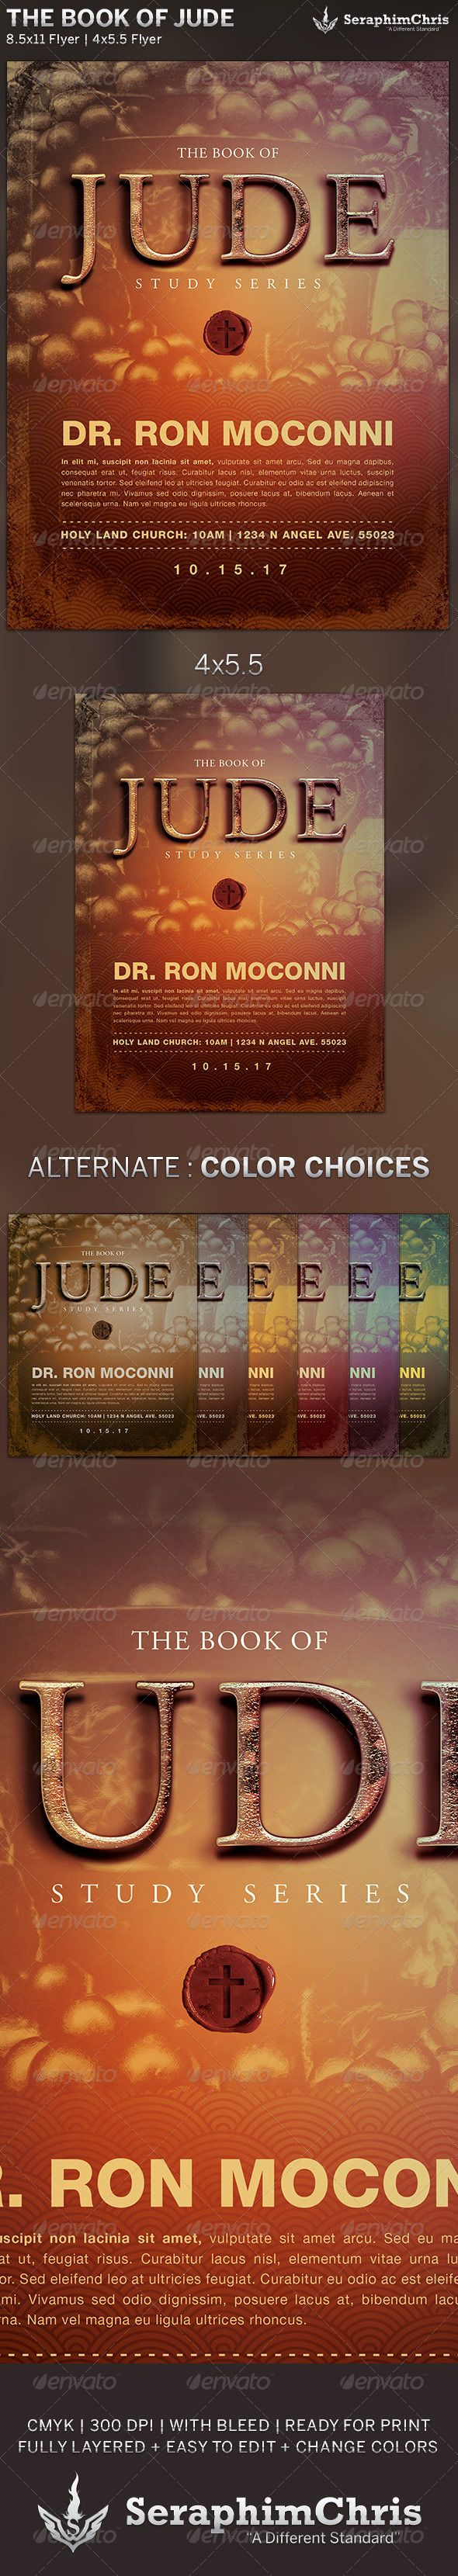 The Book of Jude: Church Flyer Template is designed for sermon series or church events revolving around the book of written by Jude, 1 of the 66 books in the Bible. This premium flyer design is constructed to give the highest dynamic quality when printed or posted to social media site and other formats. This file is exclusive to graphicriver.net